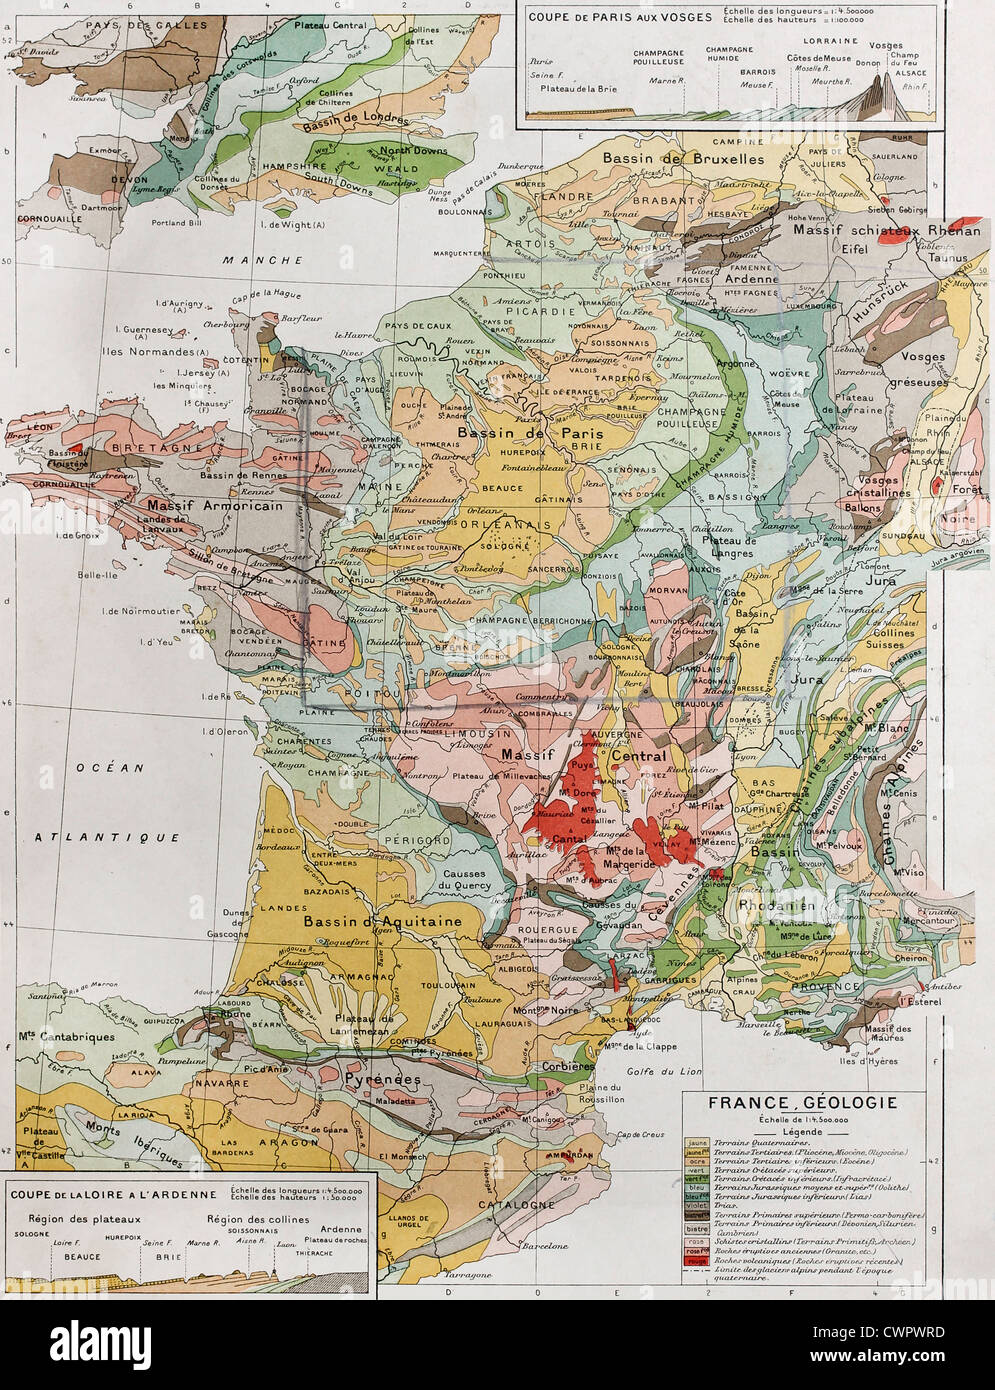 France geological map - Stock Image